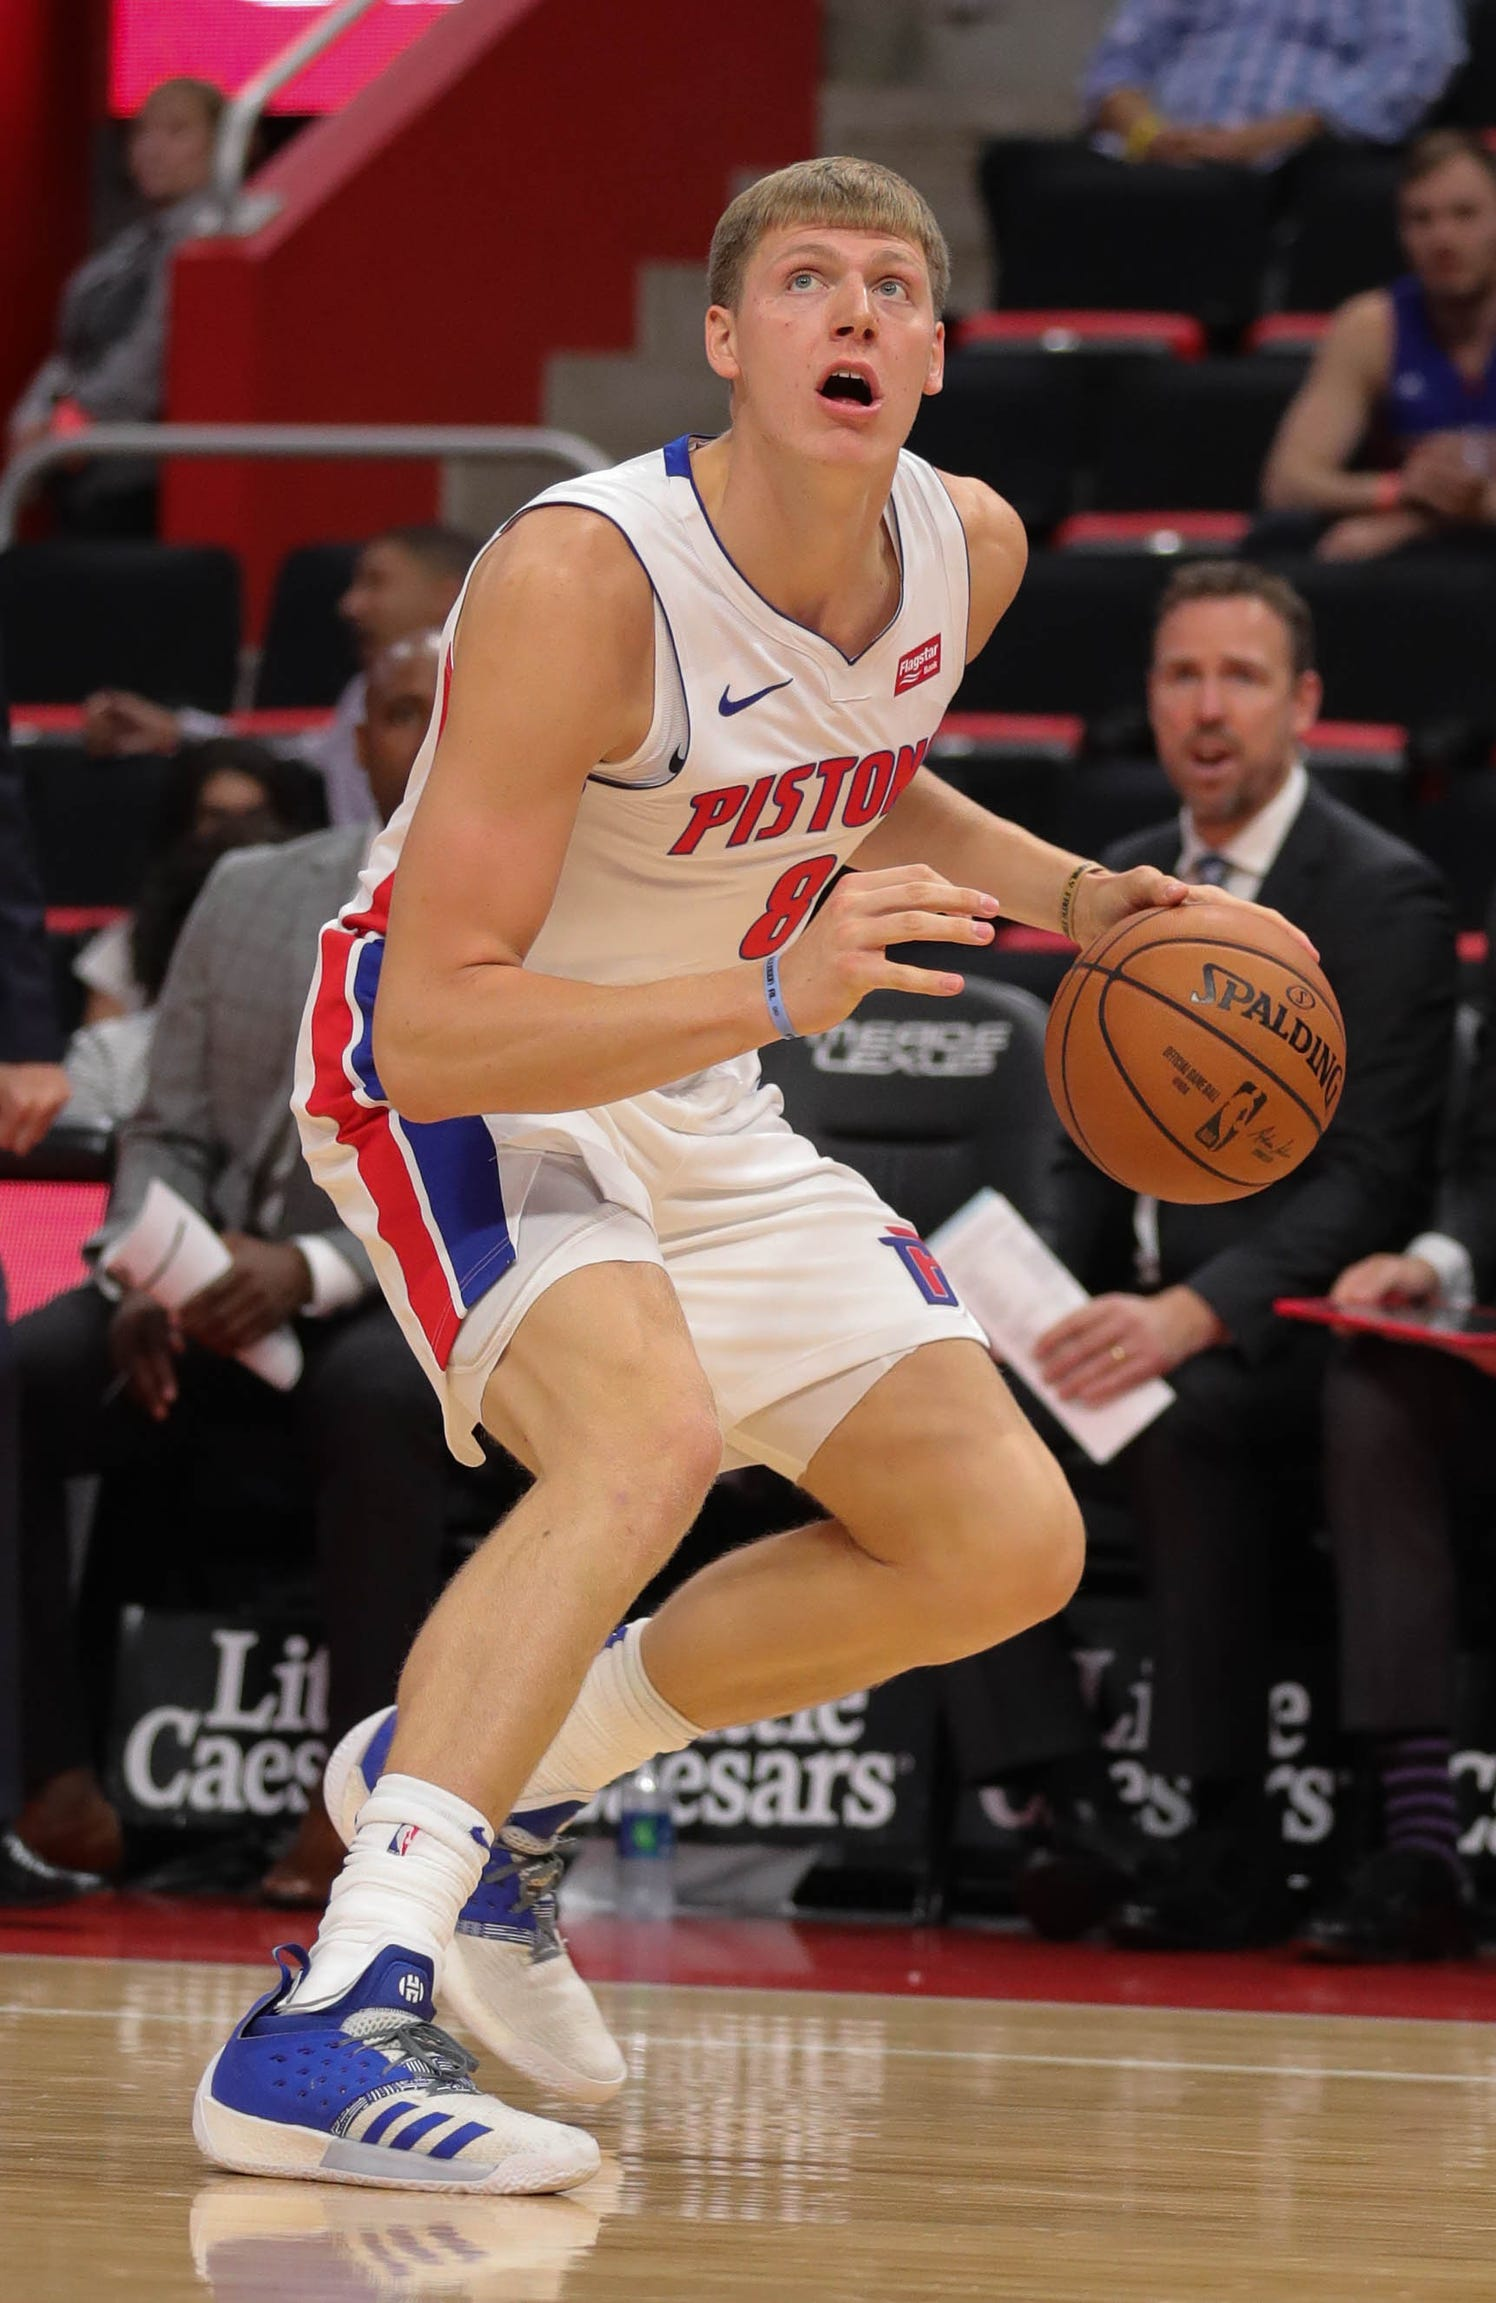 Detroit Pistons forward Henry Ellenson drives against the Brooklyn Nets during the second quarter Monday, Oct. 8, 2018 at Little Caesars Arena.